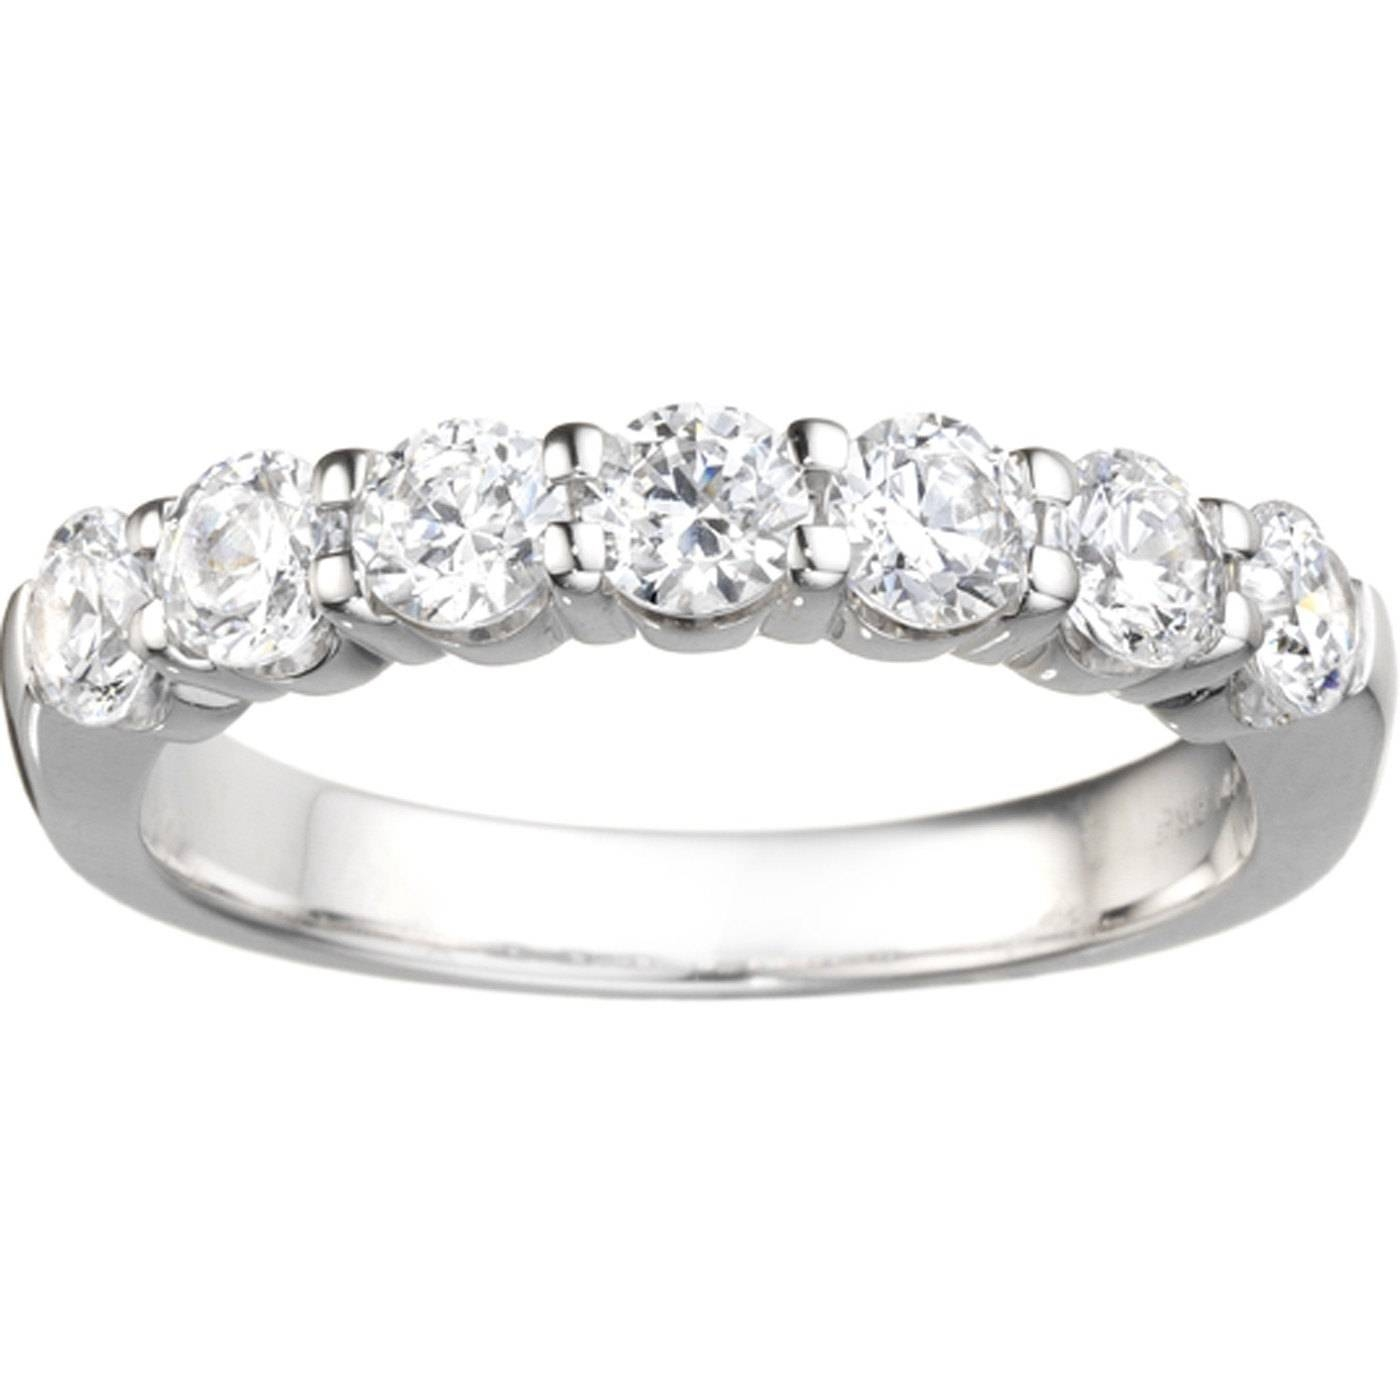 Classic 7 Stone Band .42Ct Shared Prong Cubic Zirconia Set In Pertaining To Most Recent Sterling Silver Anniversary Rings (Gallery 8 of 25)